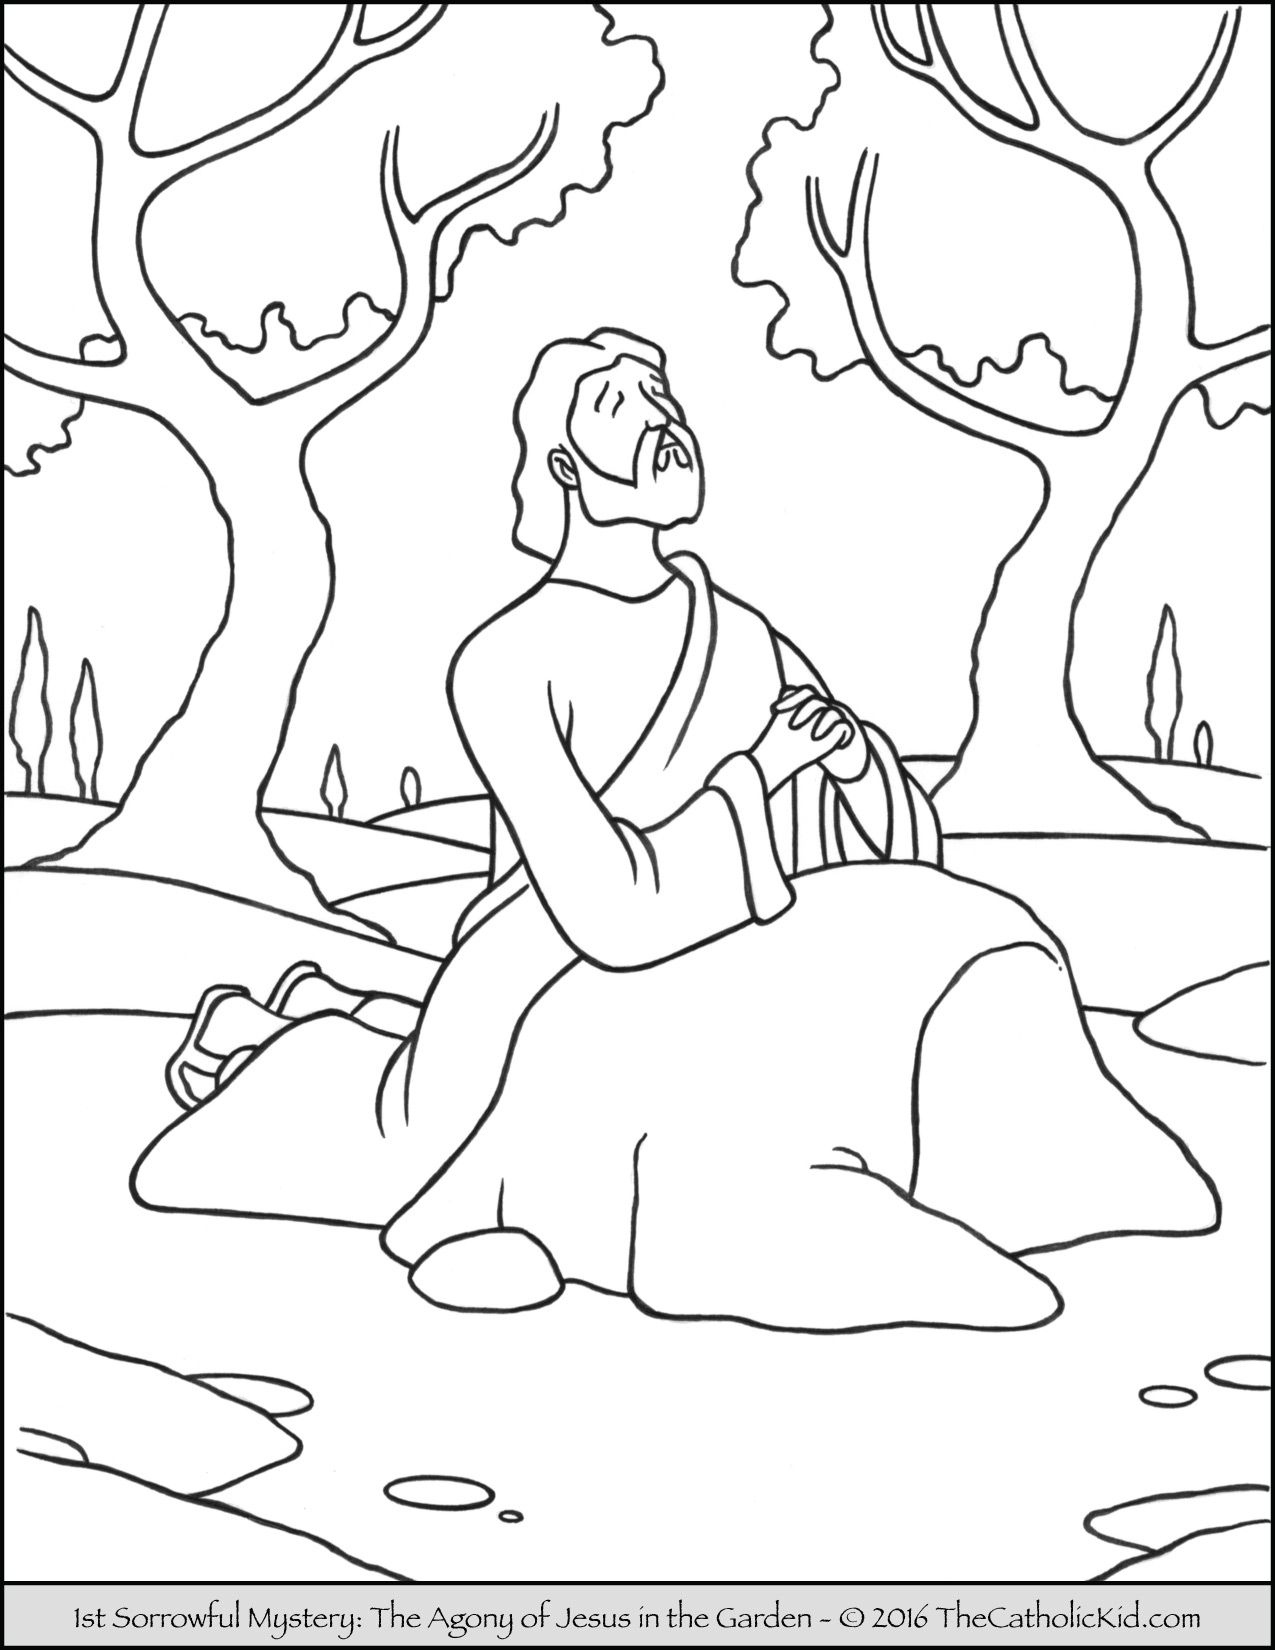 Sorrowful Mysteries Coloring Pages The Catholic Kid With Images